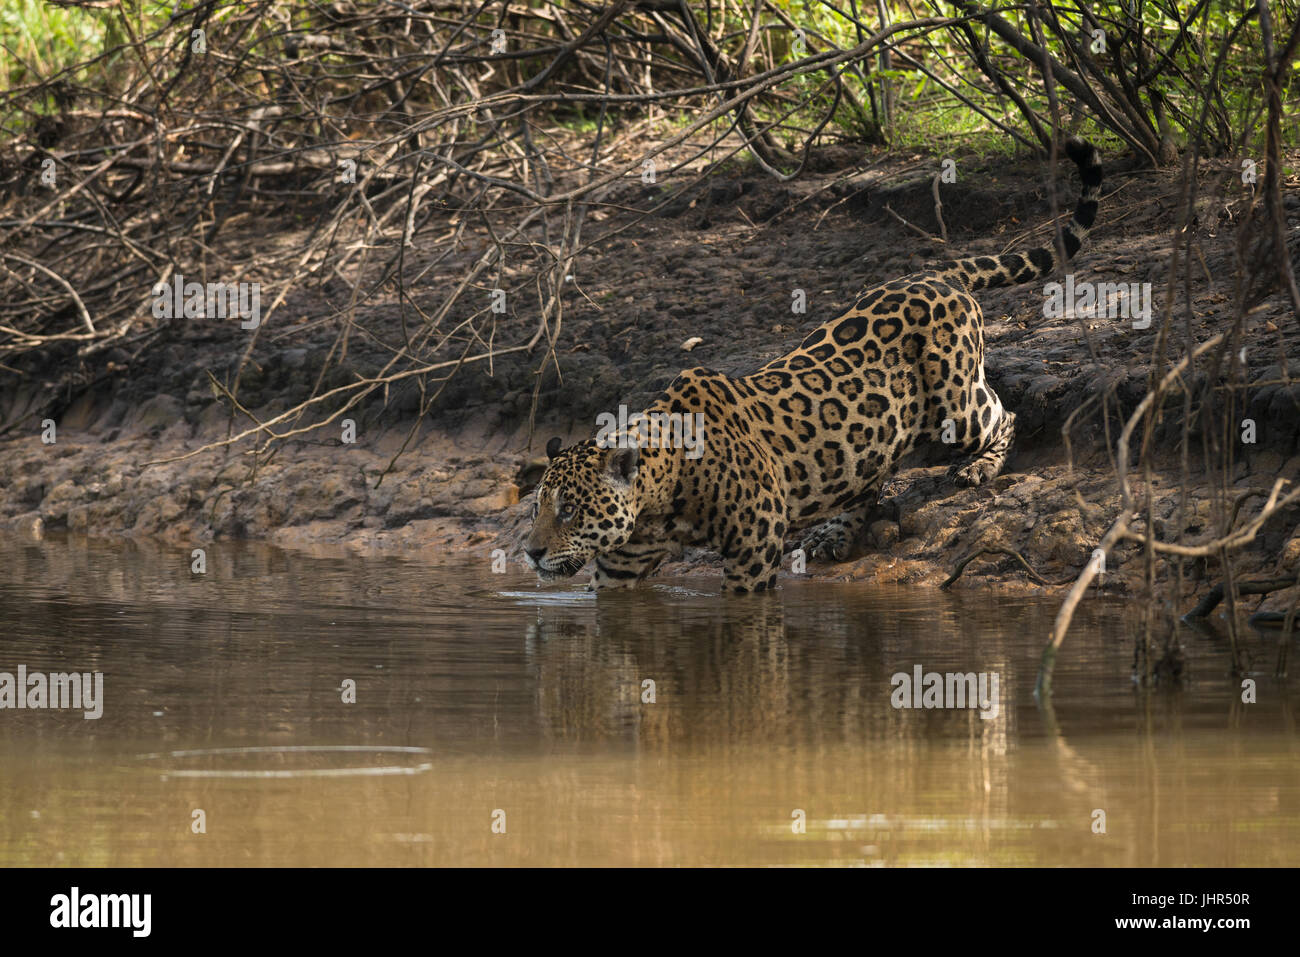 A male Jaguar entereing the water in the Pantanal Stock Photo